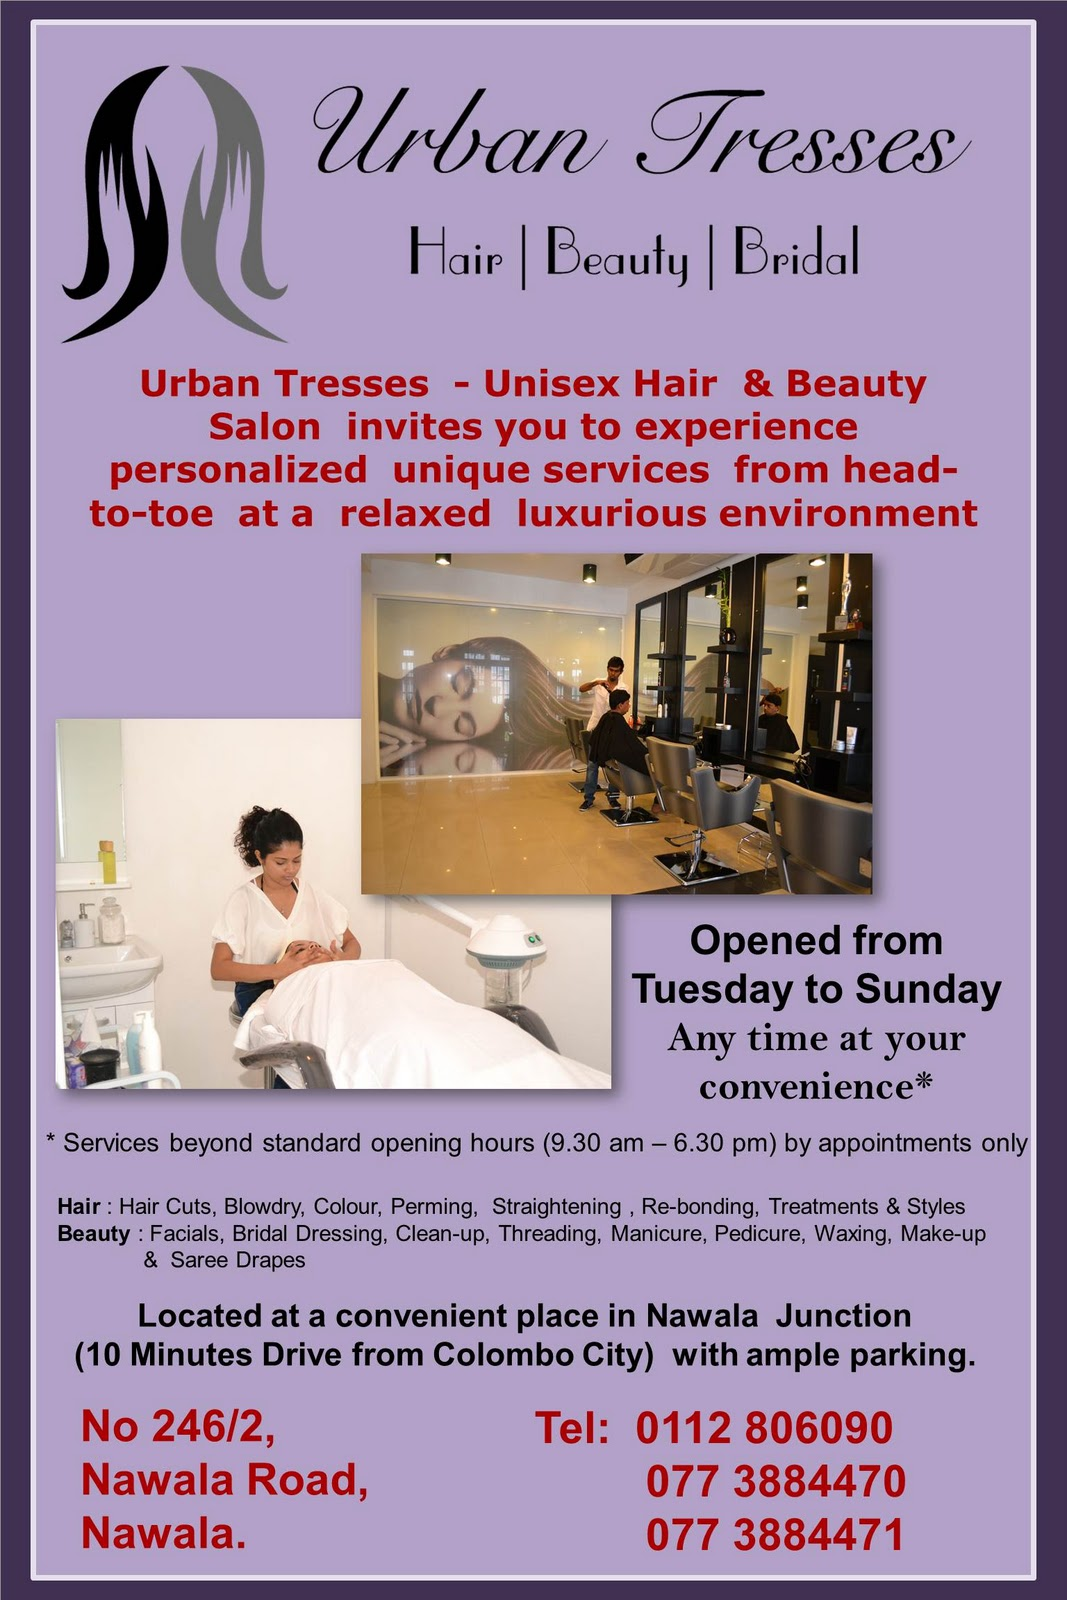 Advertisements / Press Release. Posted by Urban Tresses